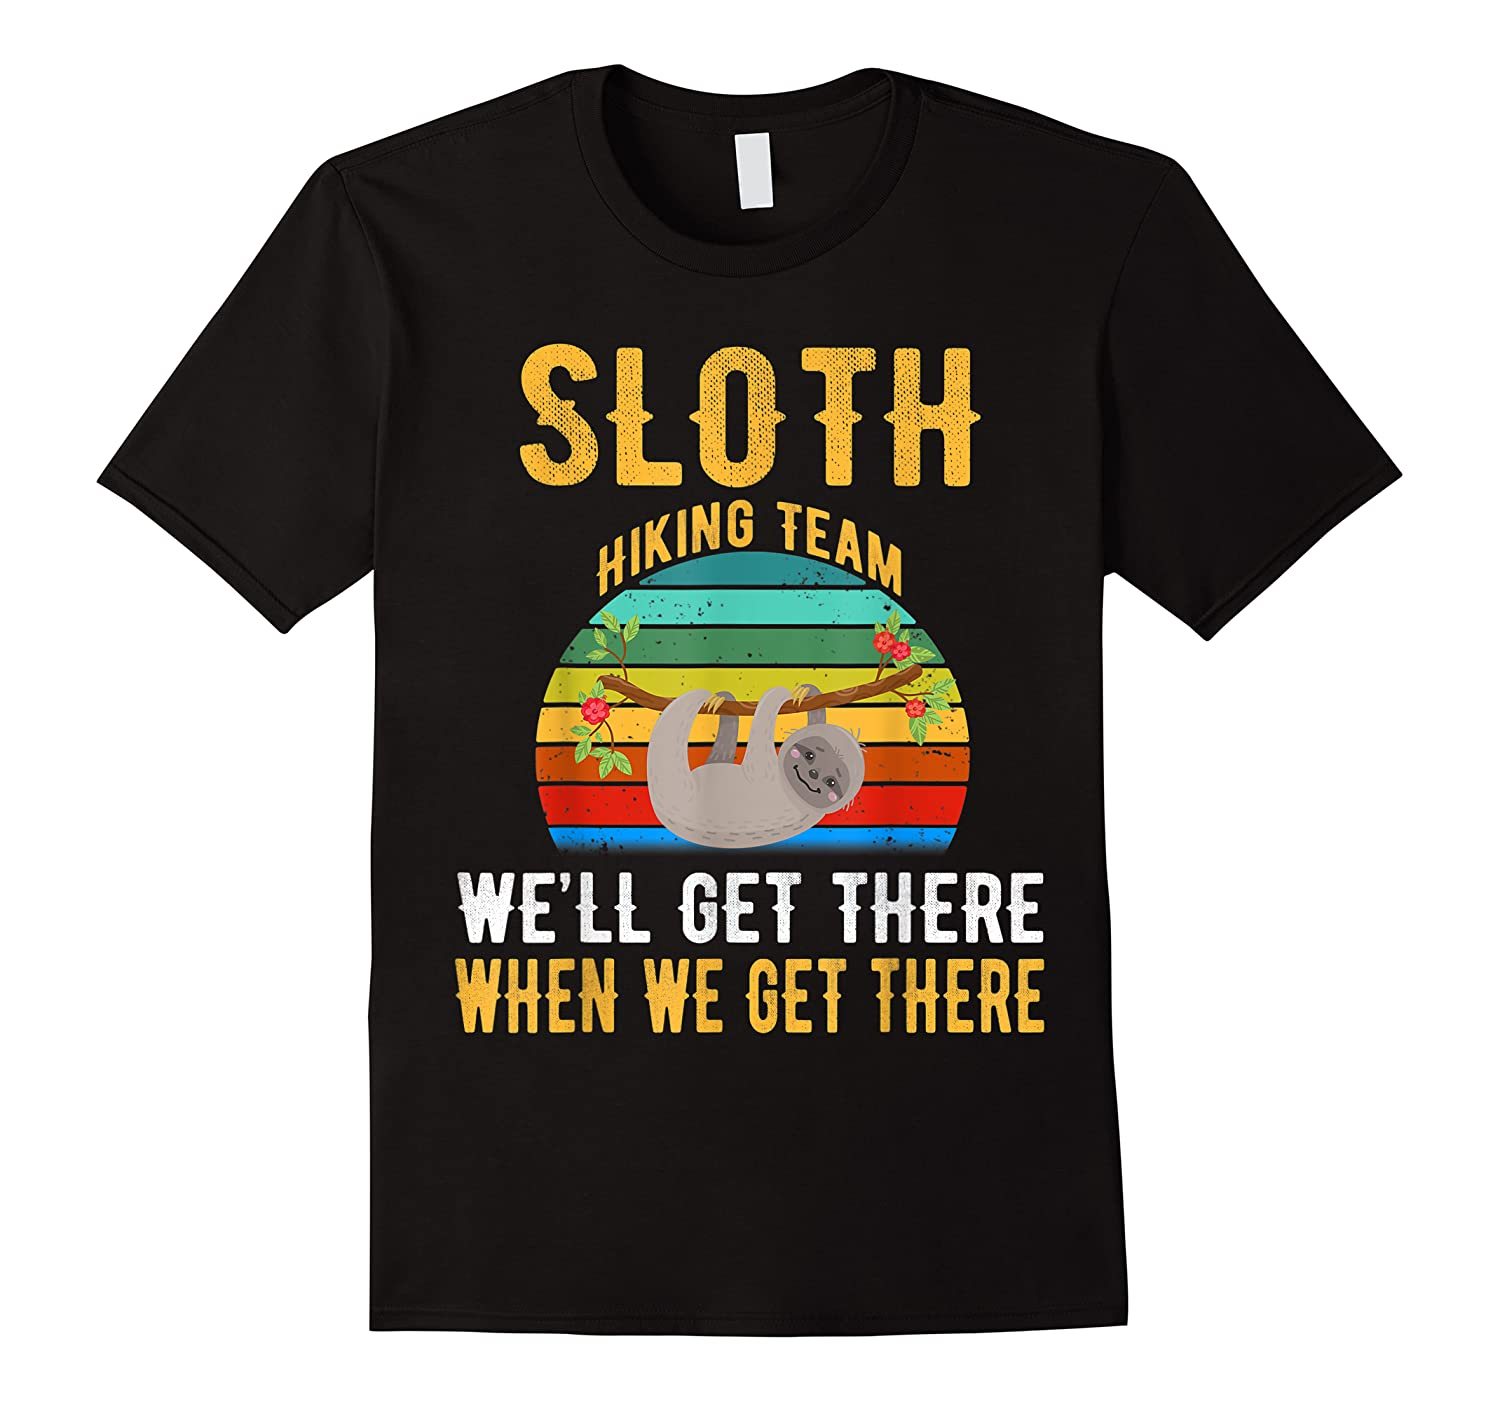 Sloth Hiking Team We Will Get There When Get There Shirt